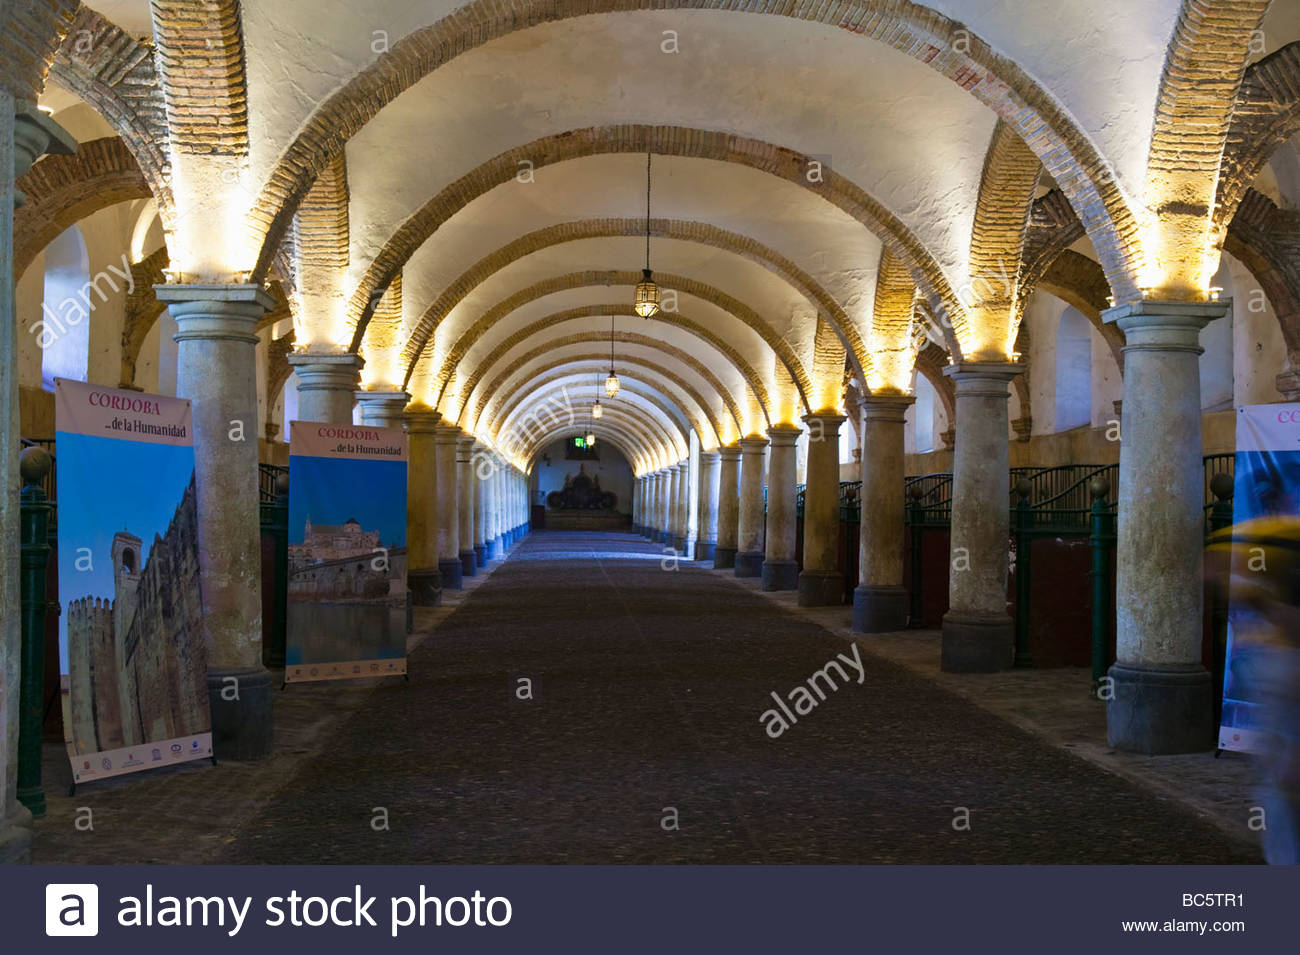 royal stables Cordoba Andalucia Spain - Stock Image